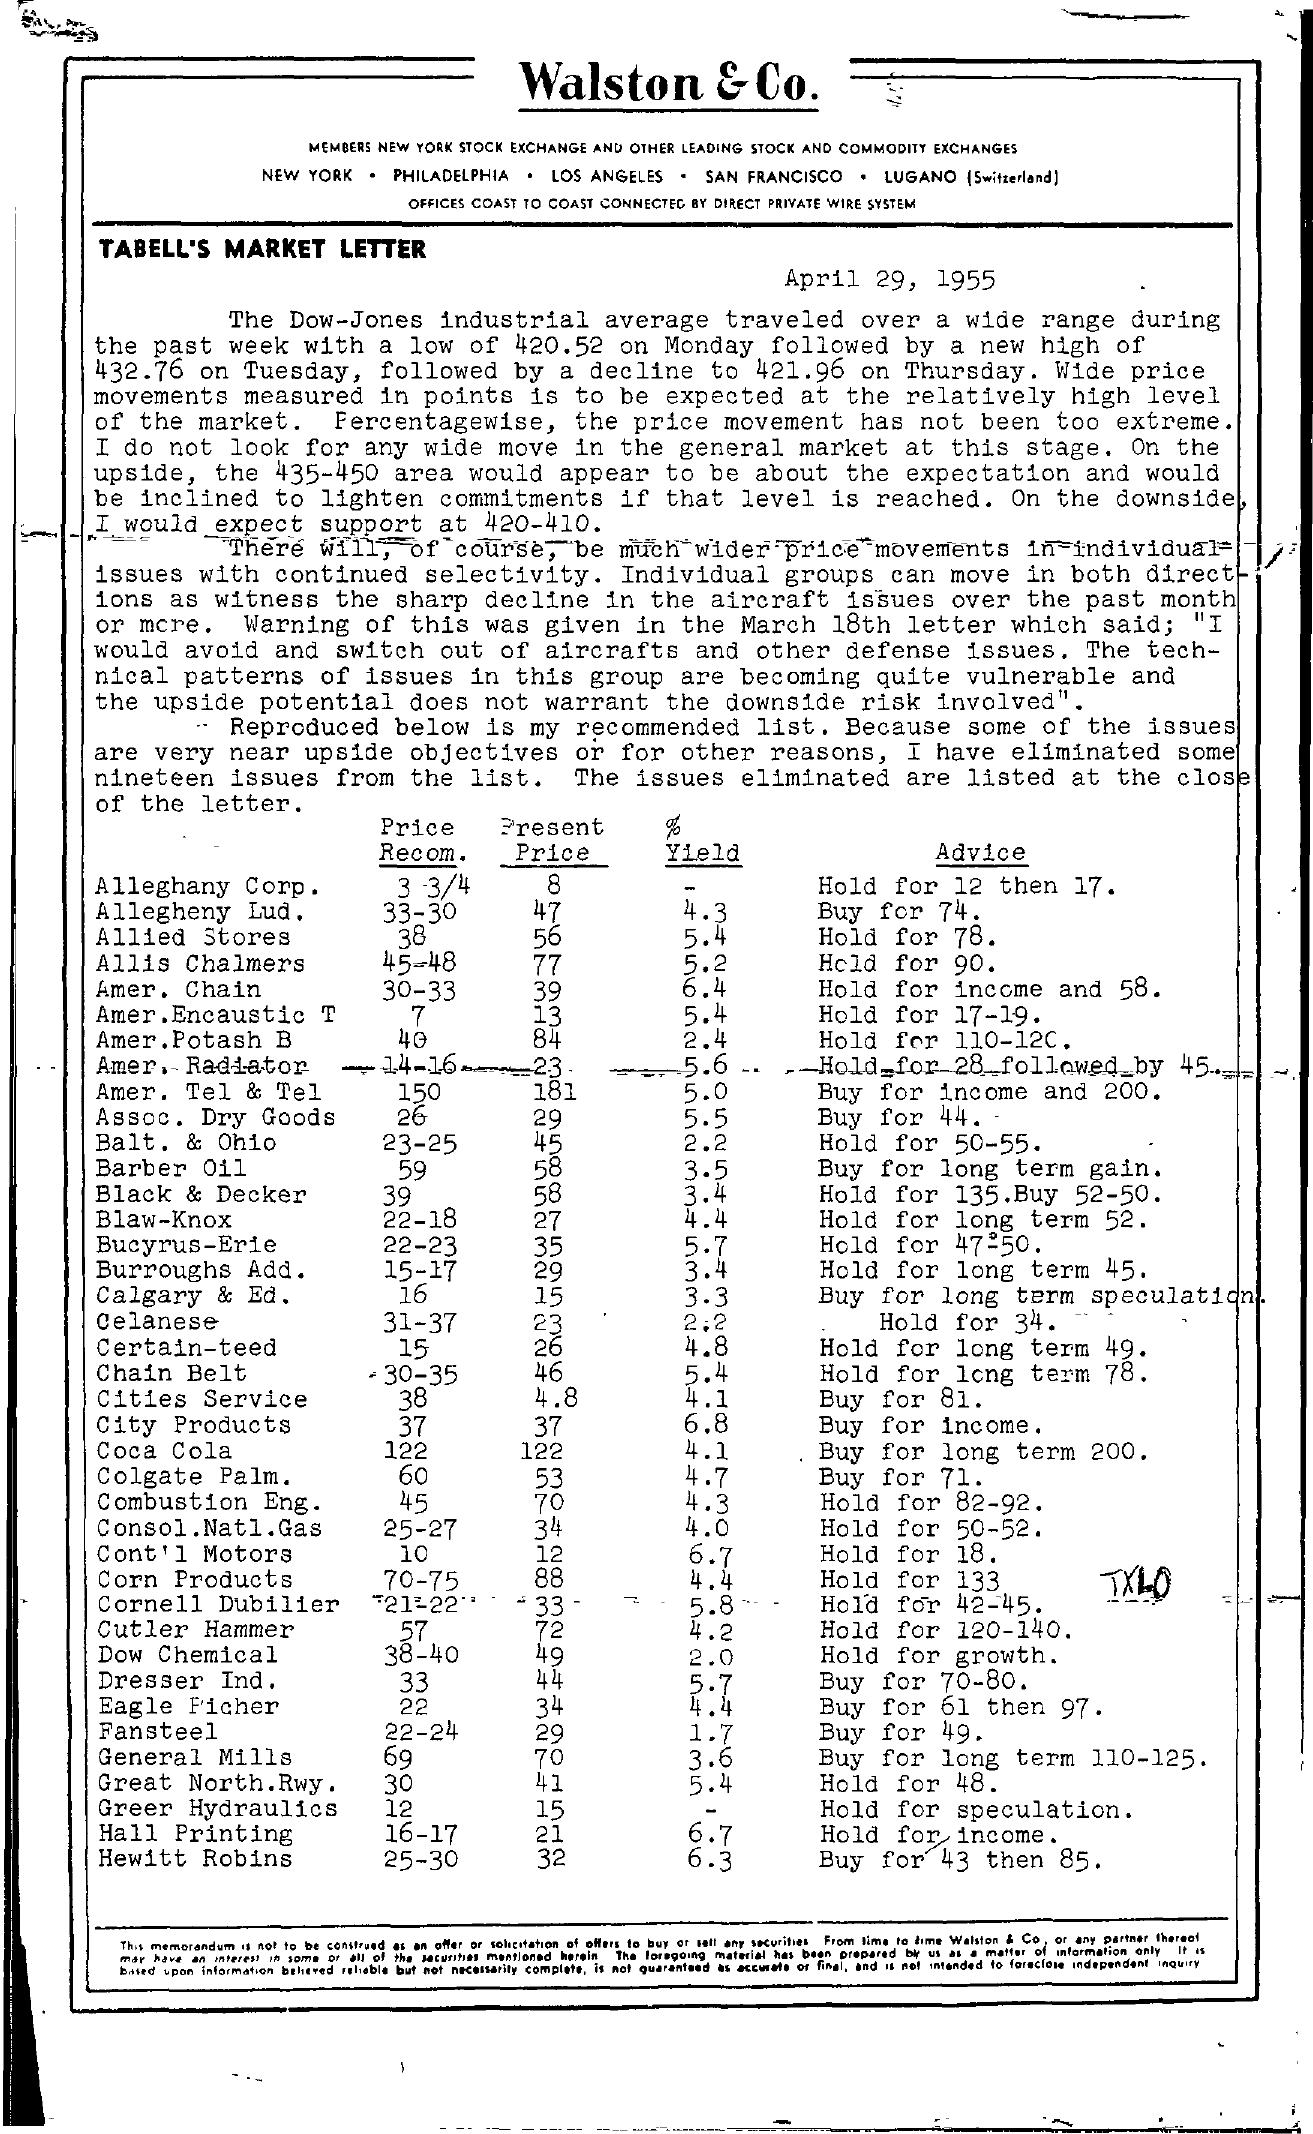 Tabell's Market Letter - April 29, 1955 page 1